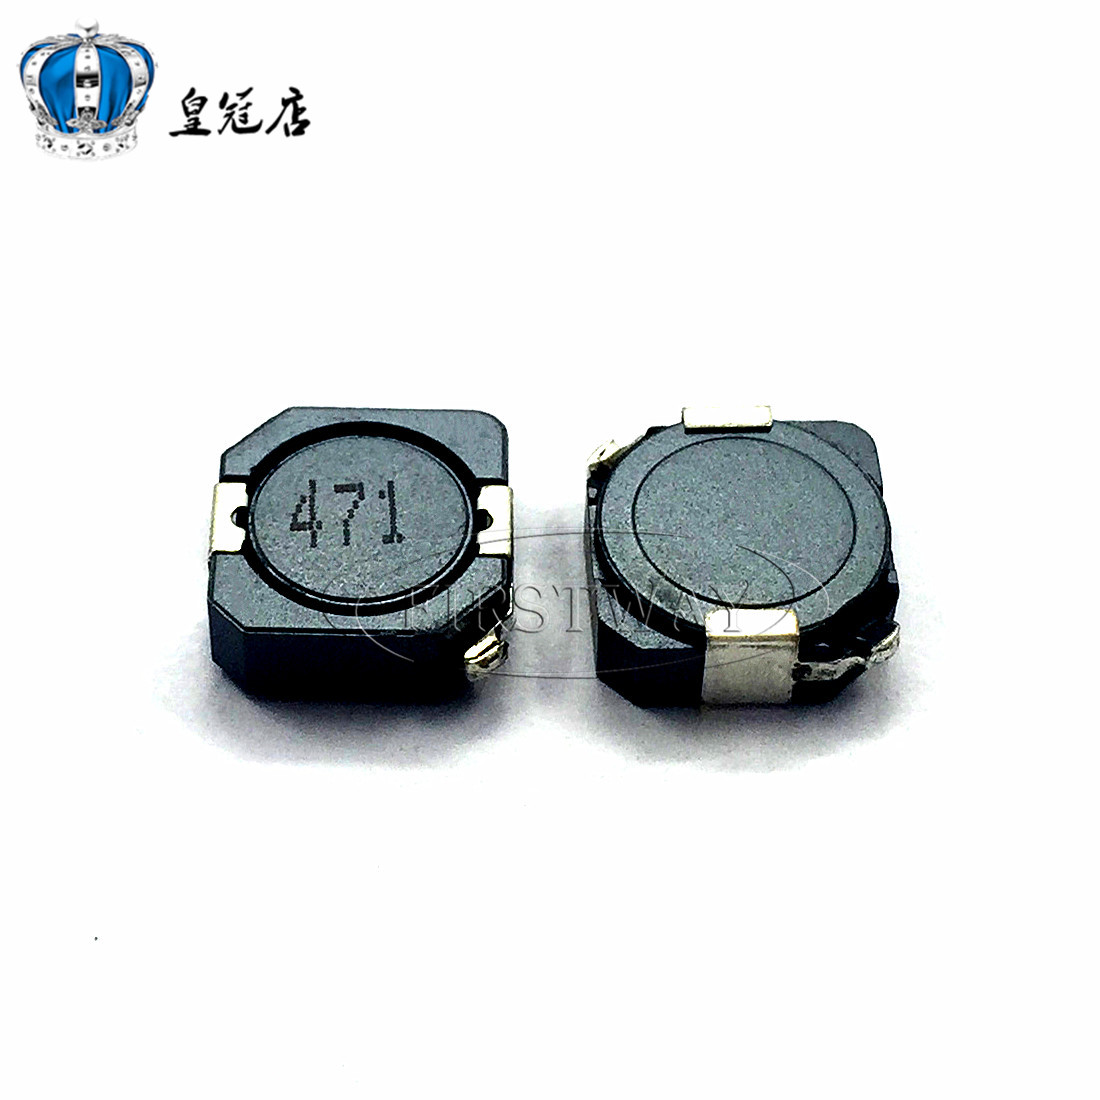 10pcsSMD power inductors CDRH104R 470UH 0.6A word:471 MS104R 10*10*4MM Shielding inductance